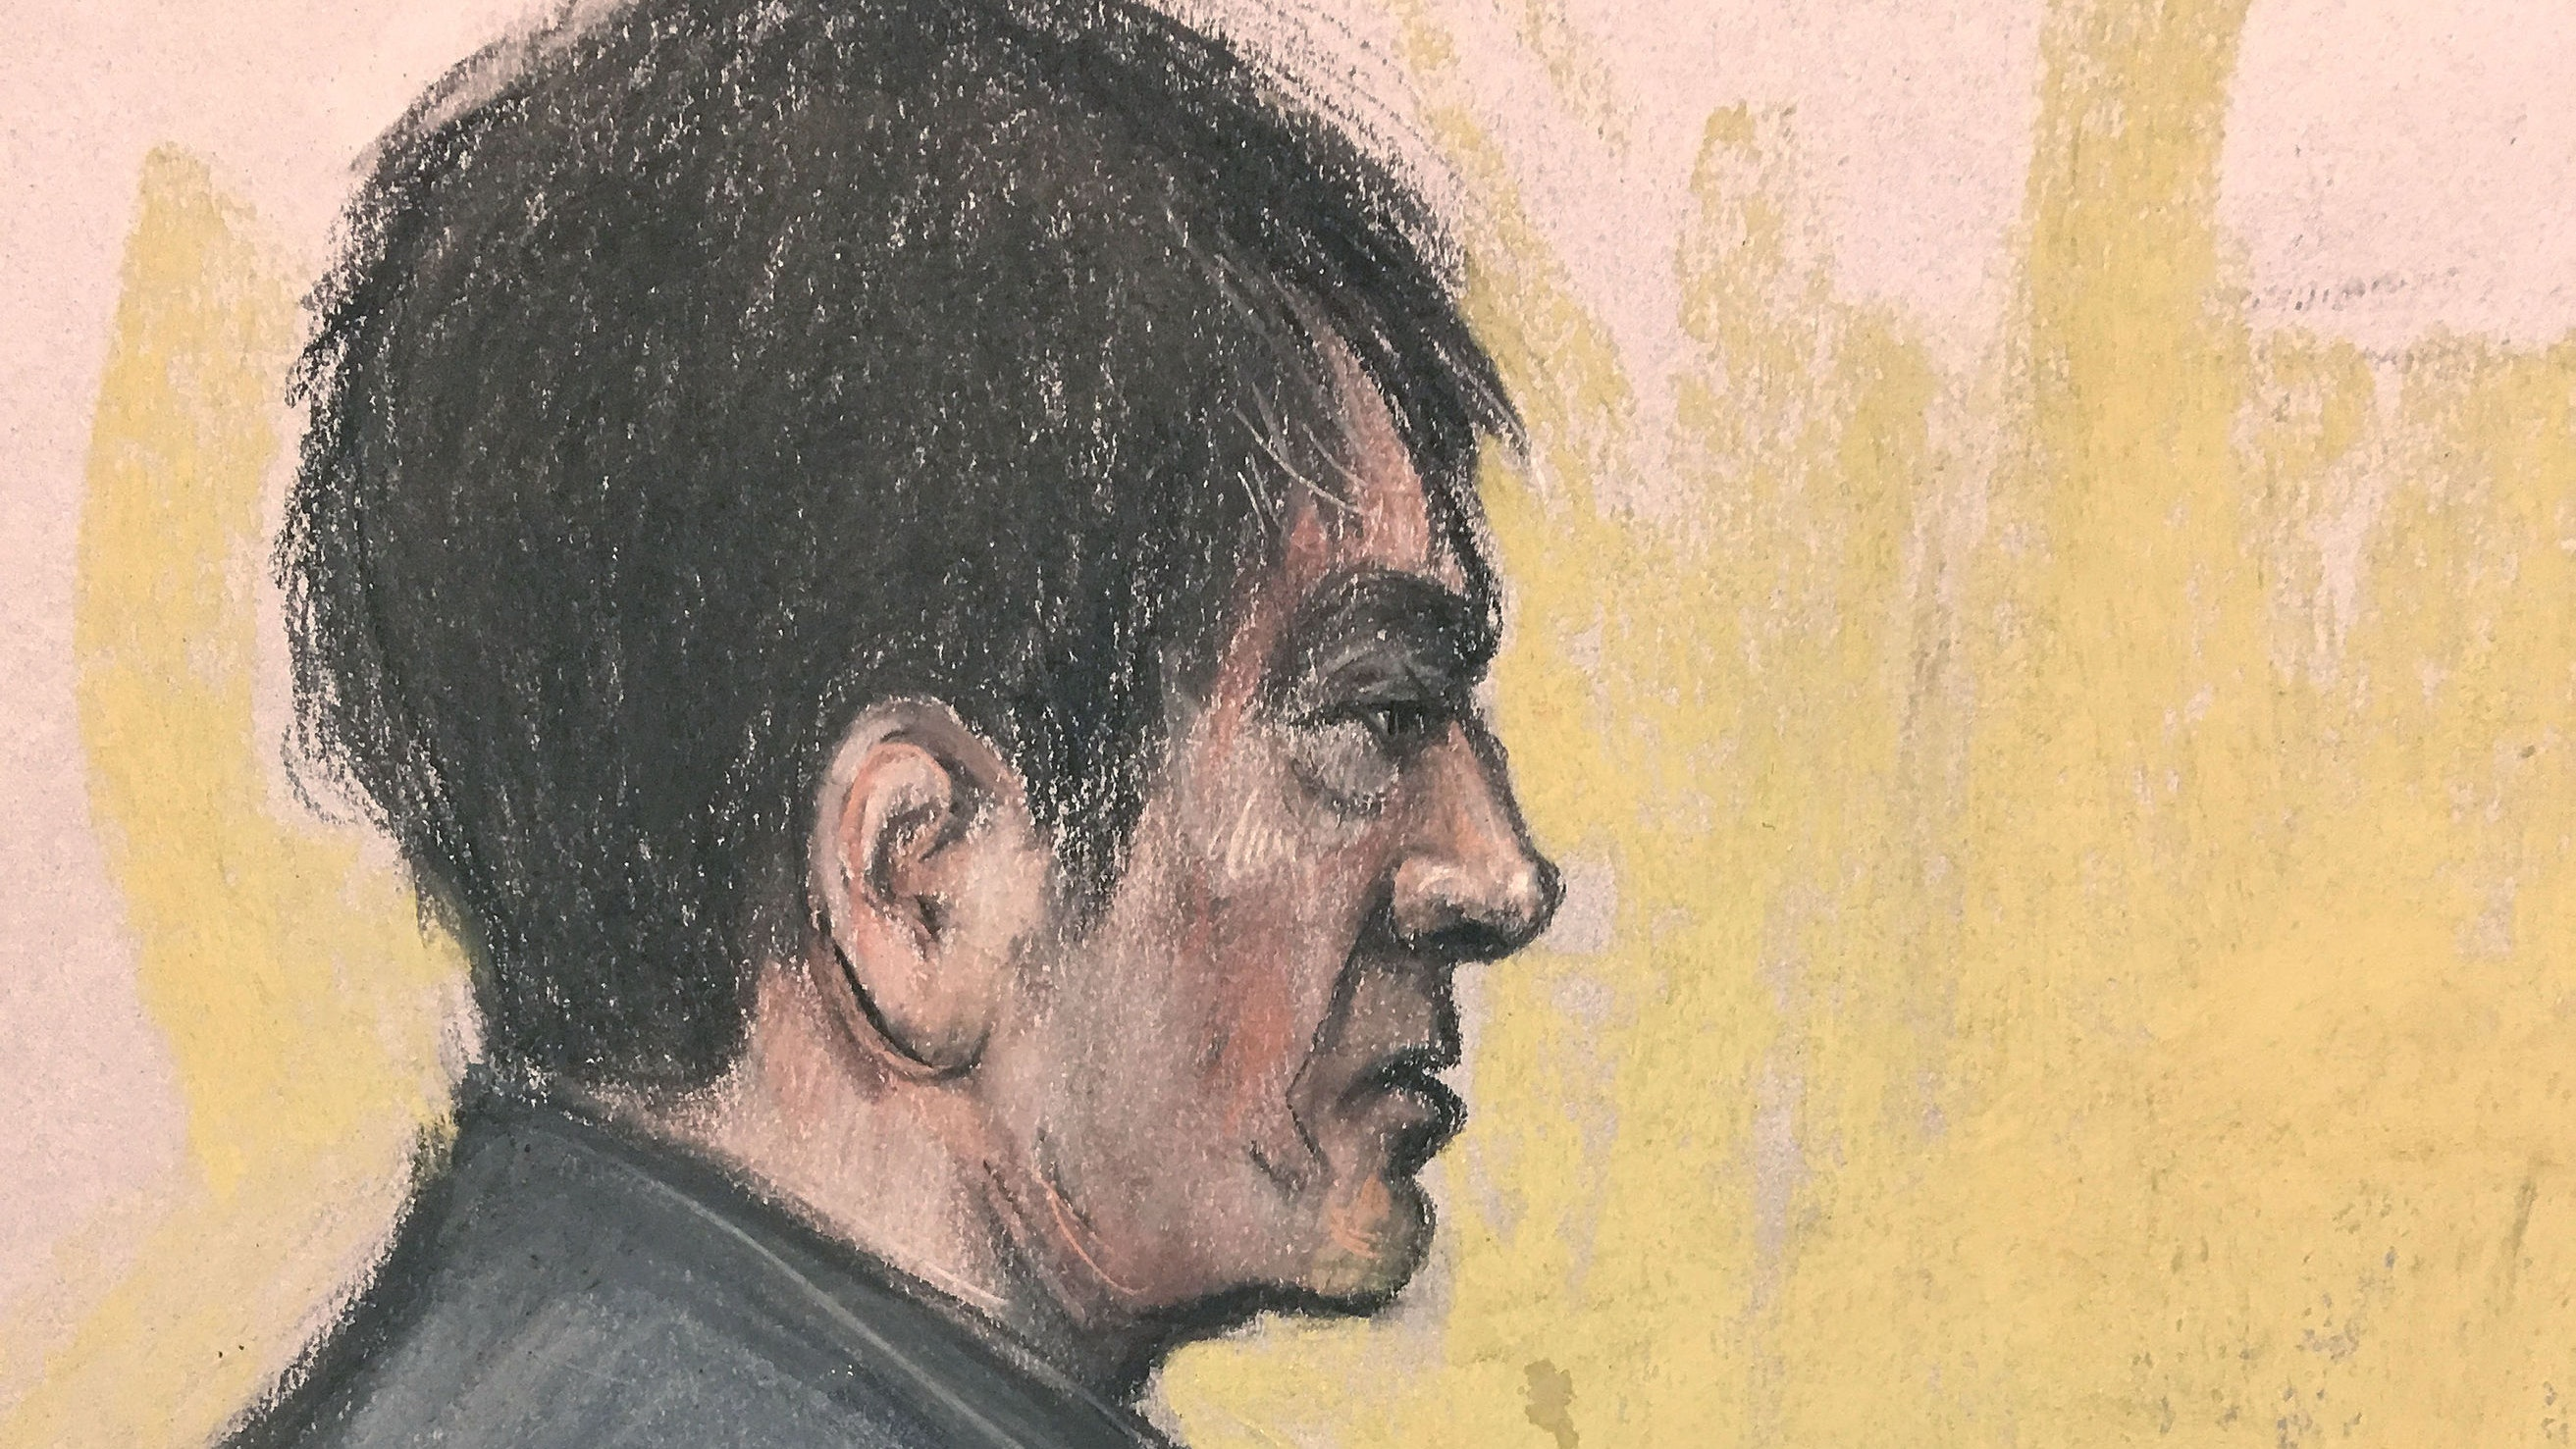 British man found guilty of fatal attack outside London mosque